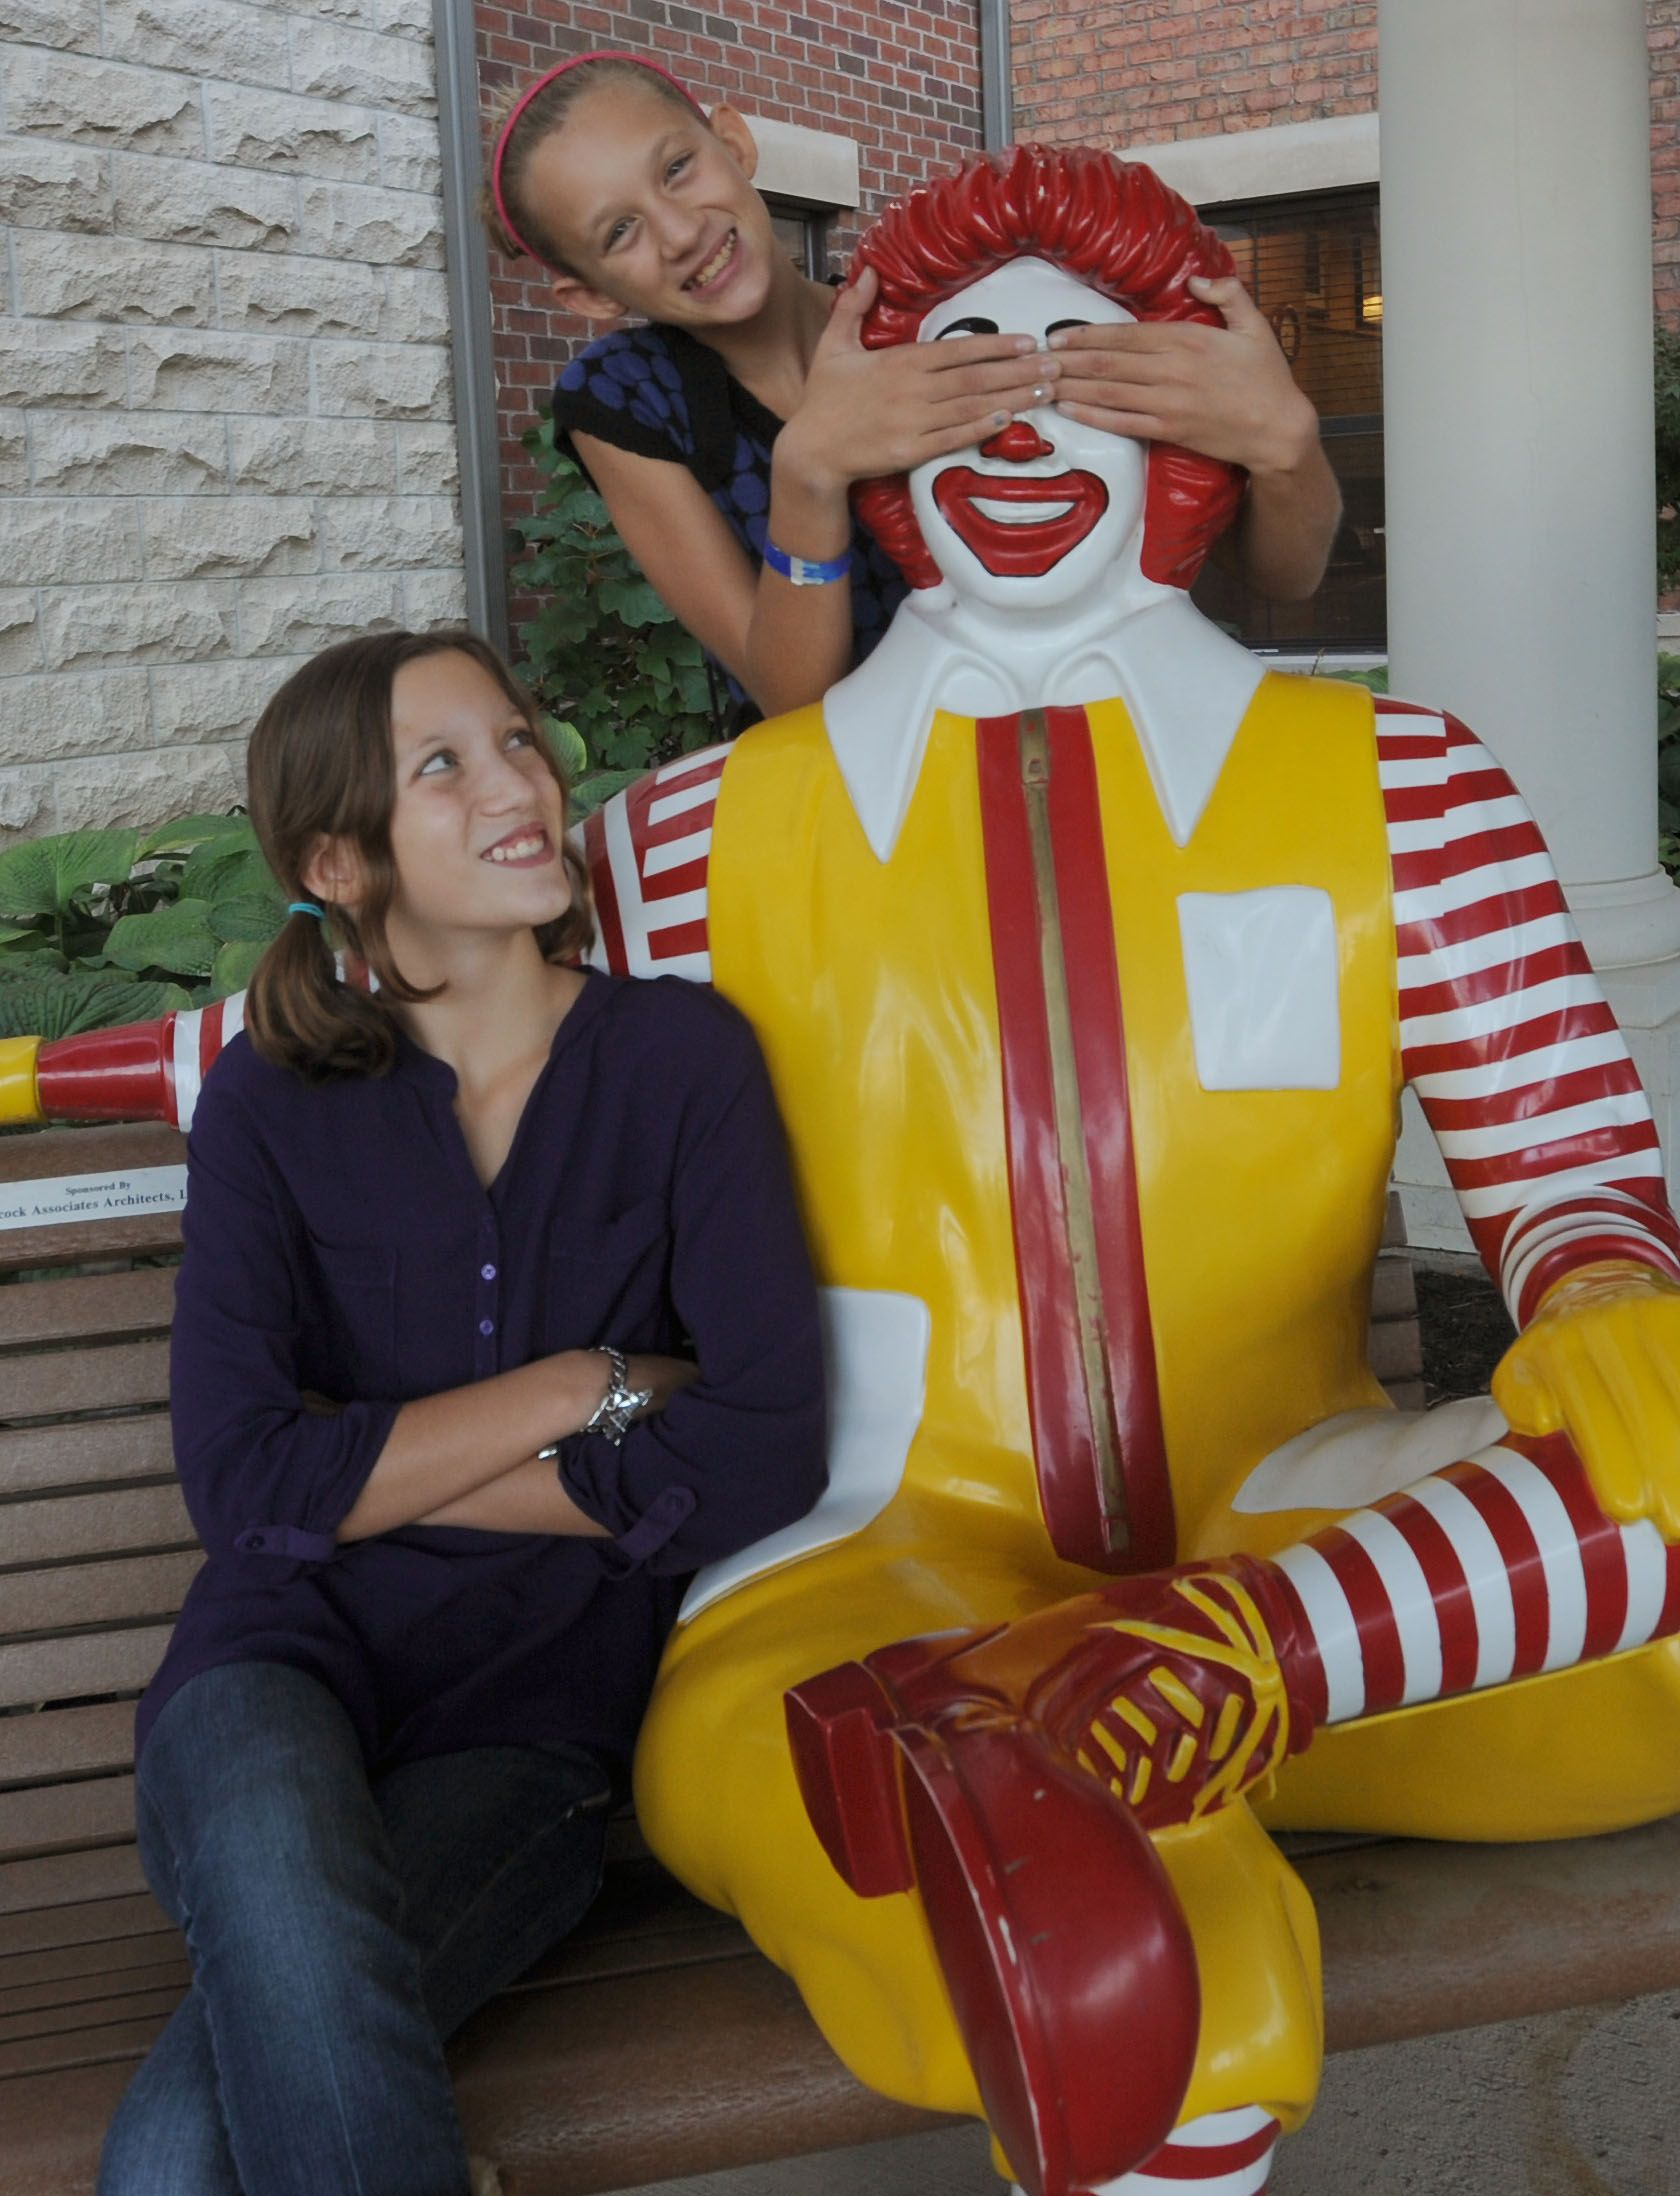 The Girls Had A Great Time At The Ronald McDonald House, Where We Shared A